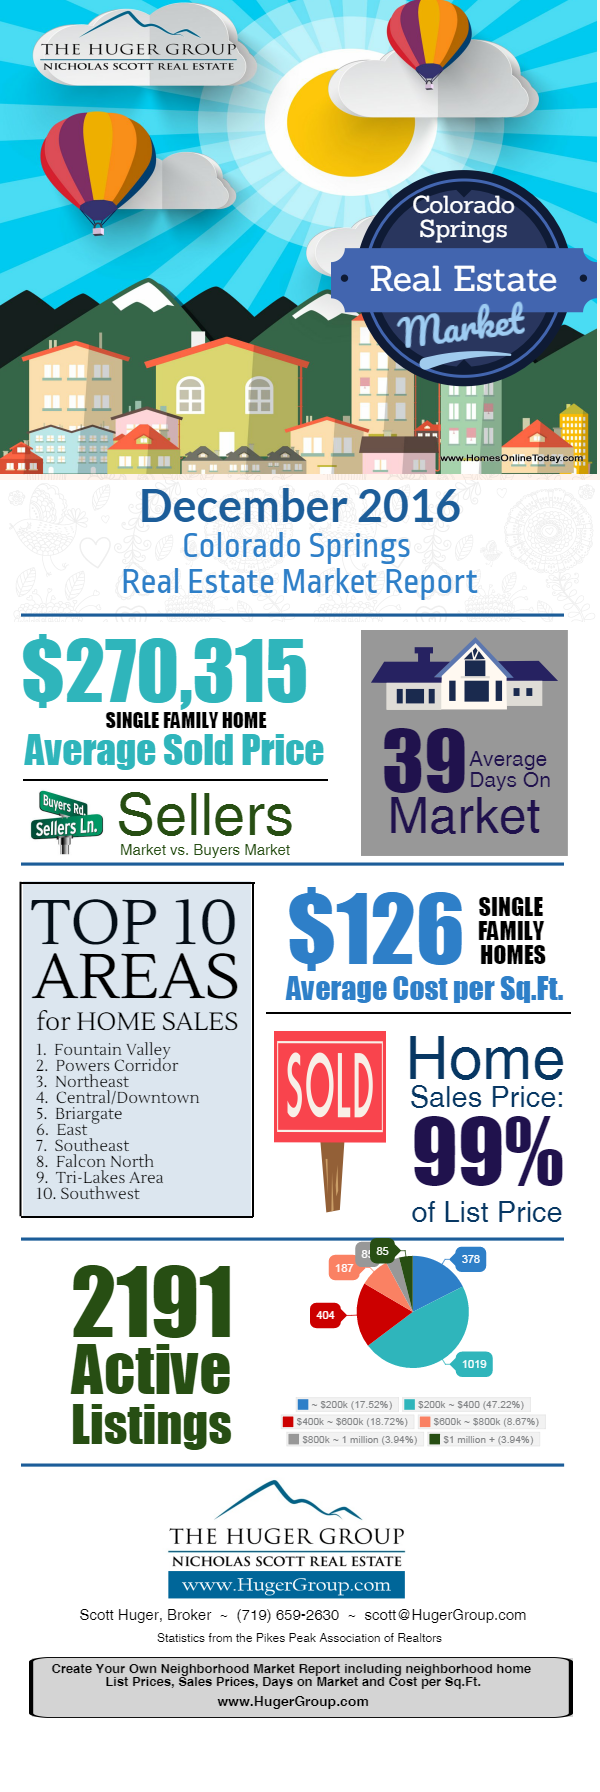 Colorado Springs Real Estate Market Report December 2016